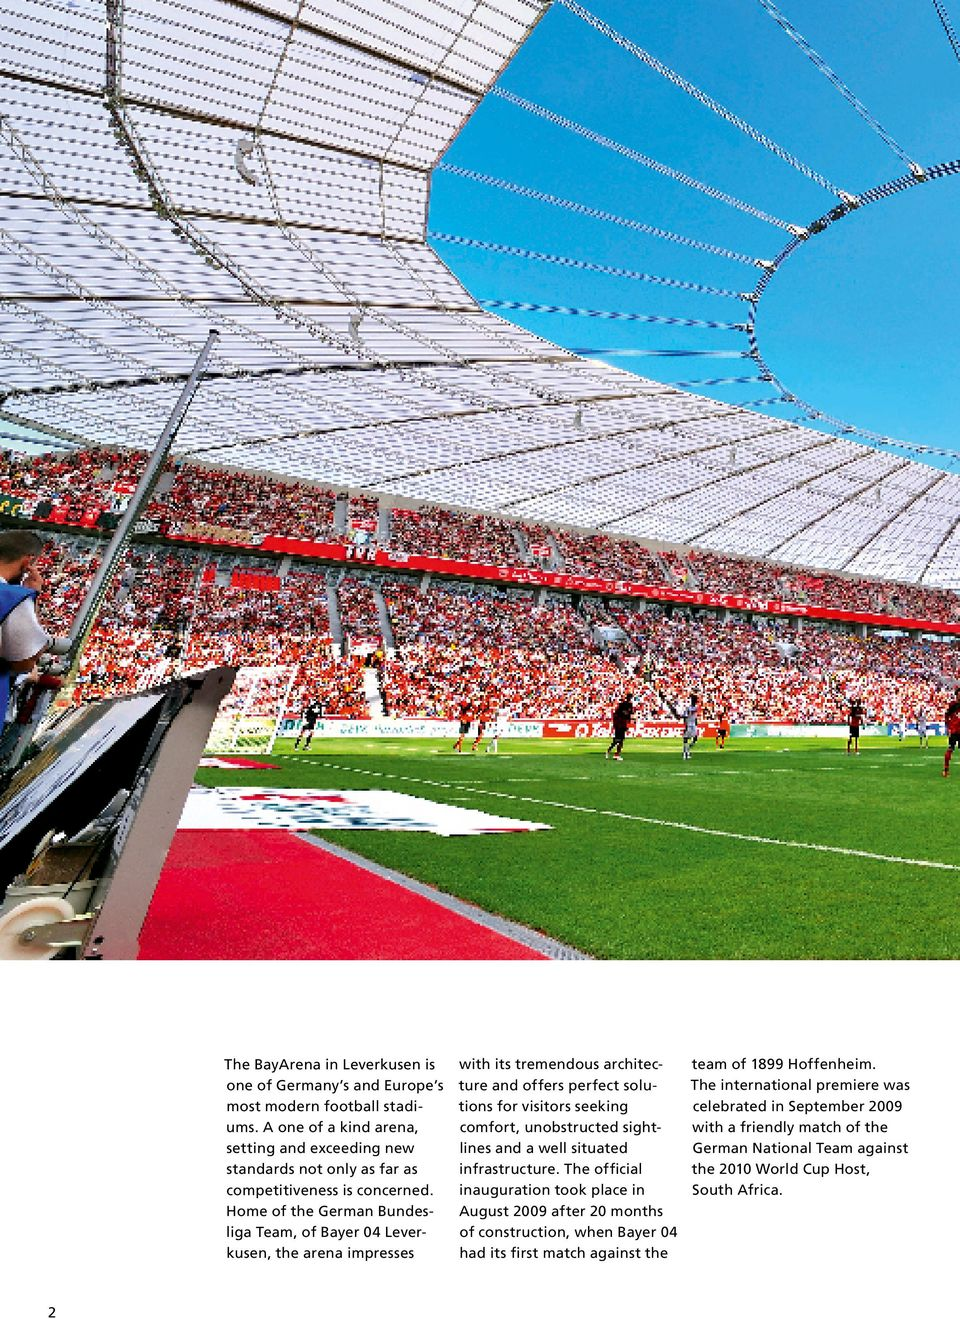 Home of the German Bundesliga Team, of Bayer 04 Leverkusen, the arena impresses with its tremendous architecture and offers perfect solutions for visitors seeking comfort, unobstructed